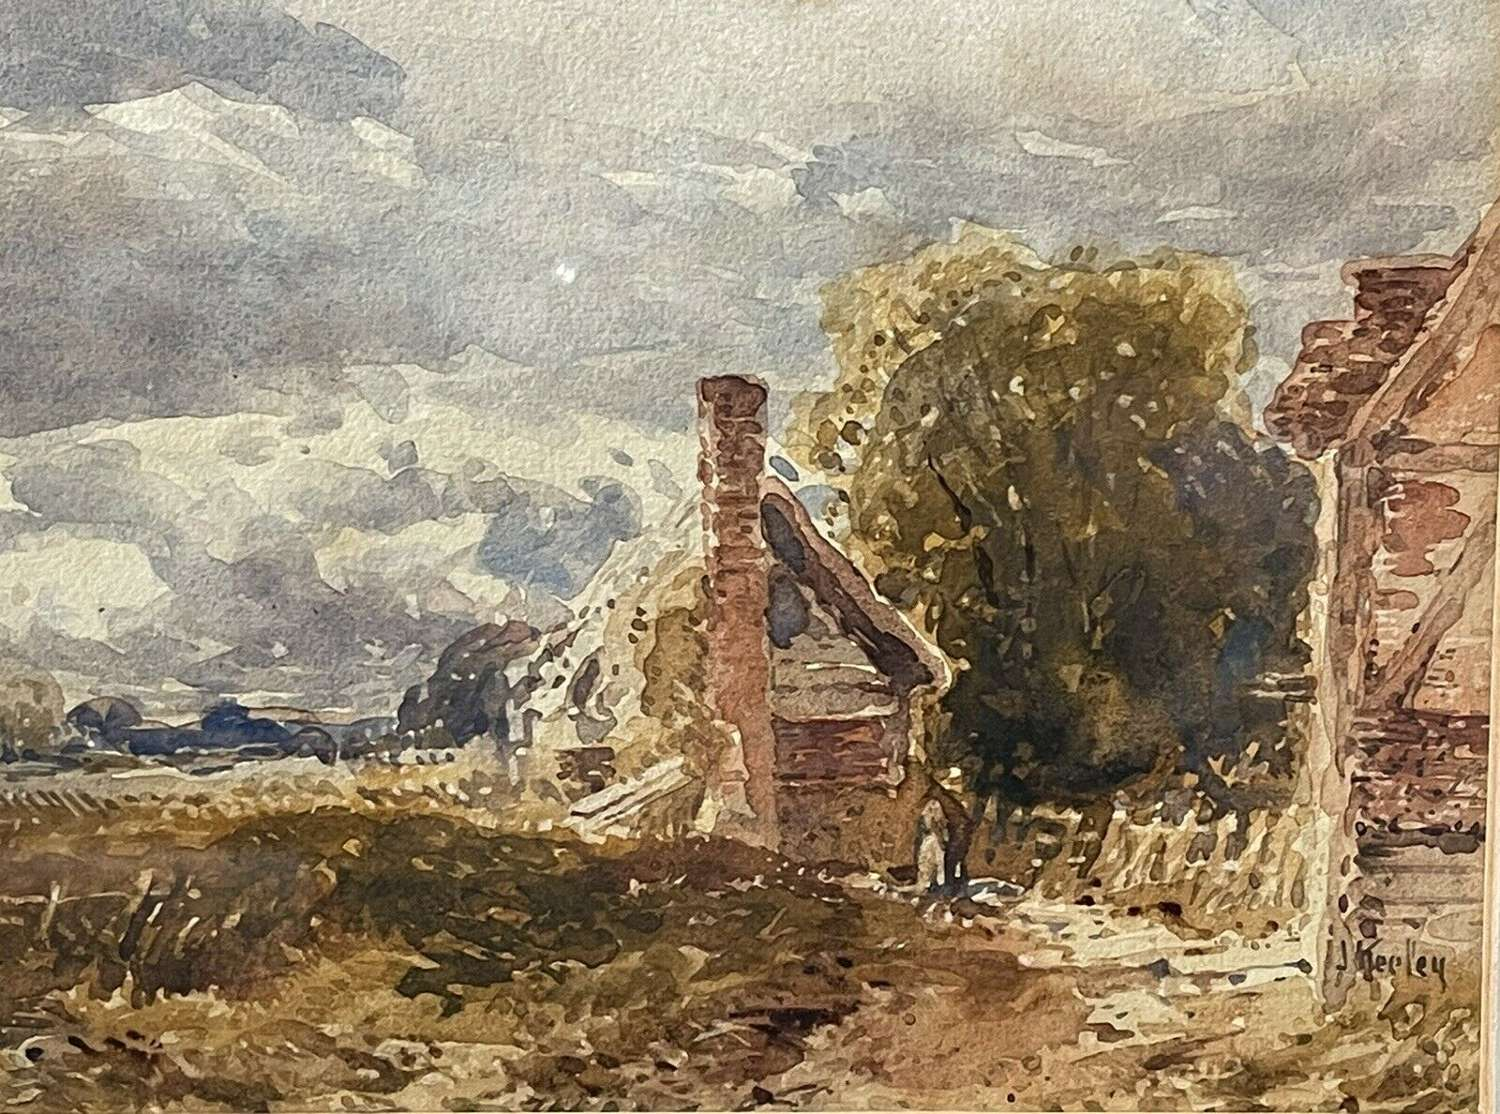 John Keeley Watercolour Cottages at Cropthorne.